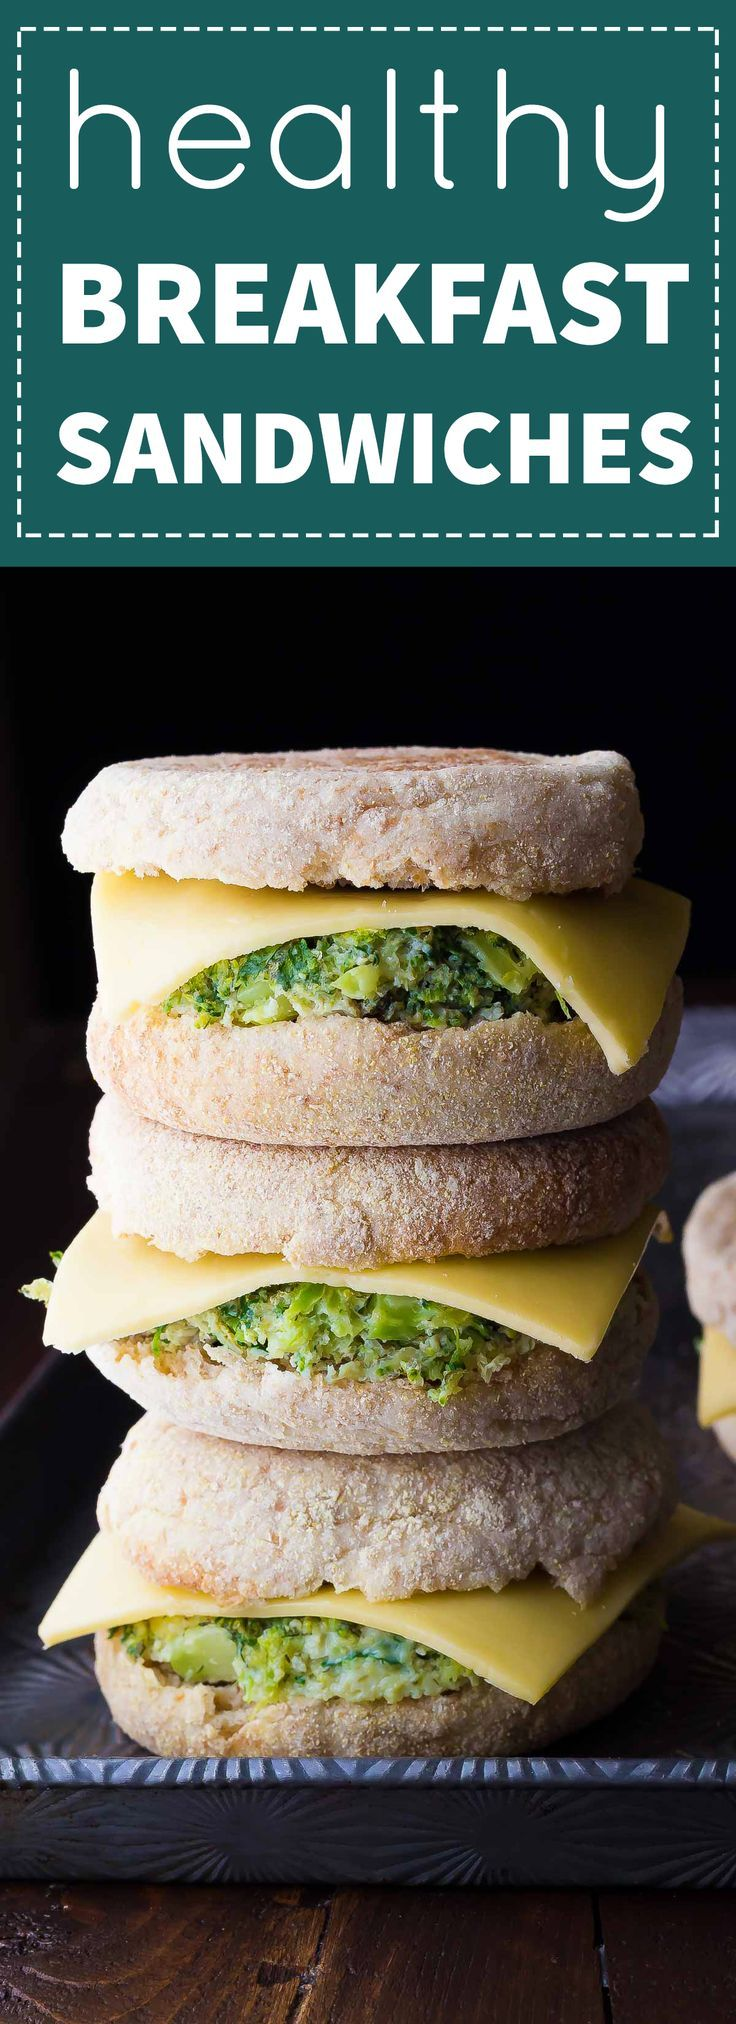 These Healthy Freezer Breakfast Sandwiches are packed full of veggies and are the easiest grab-and-go breakfast on busy mornings!